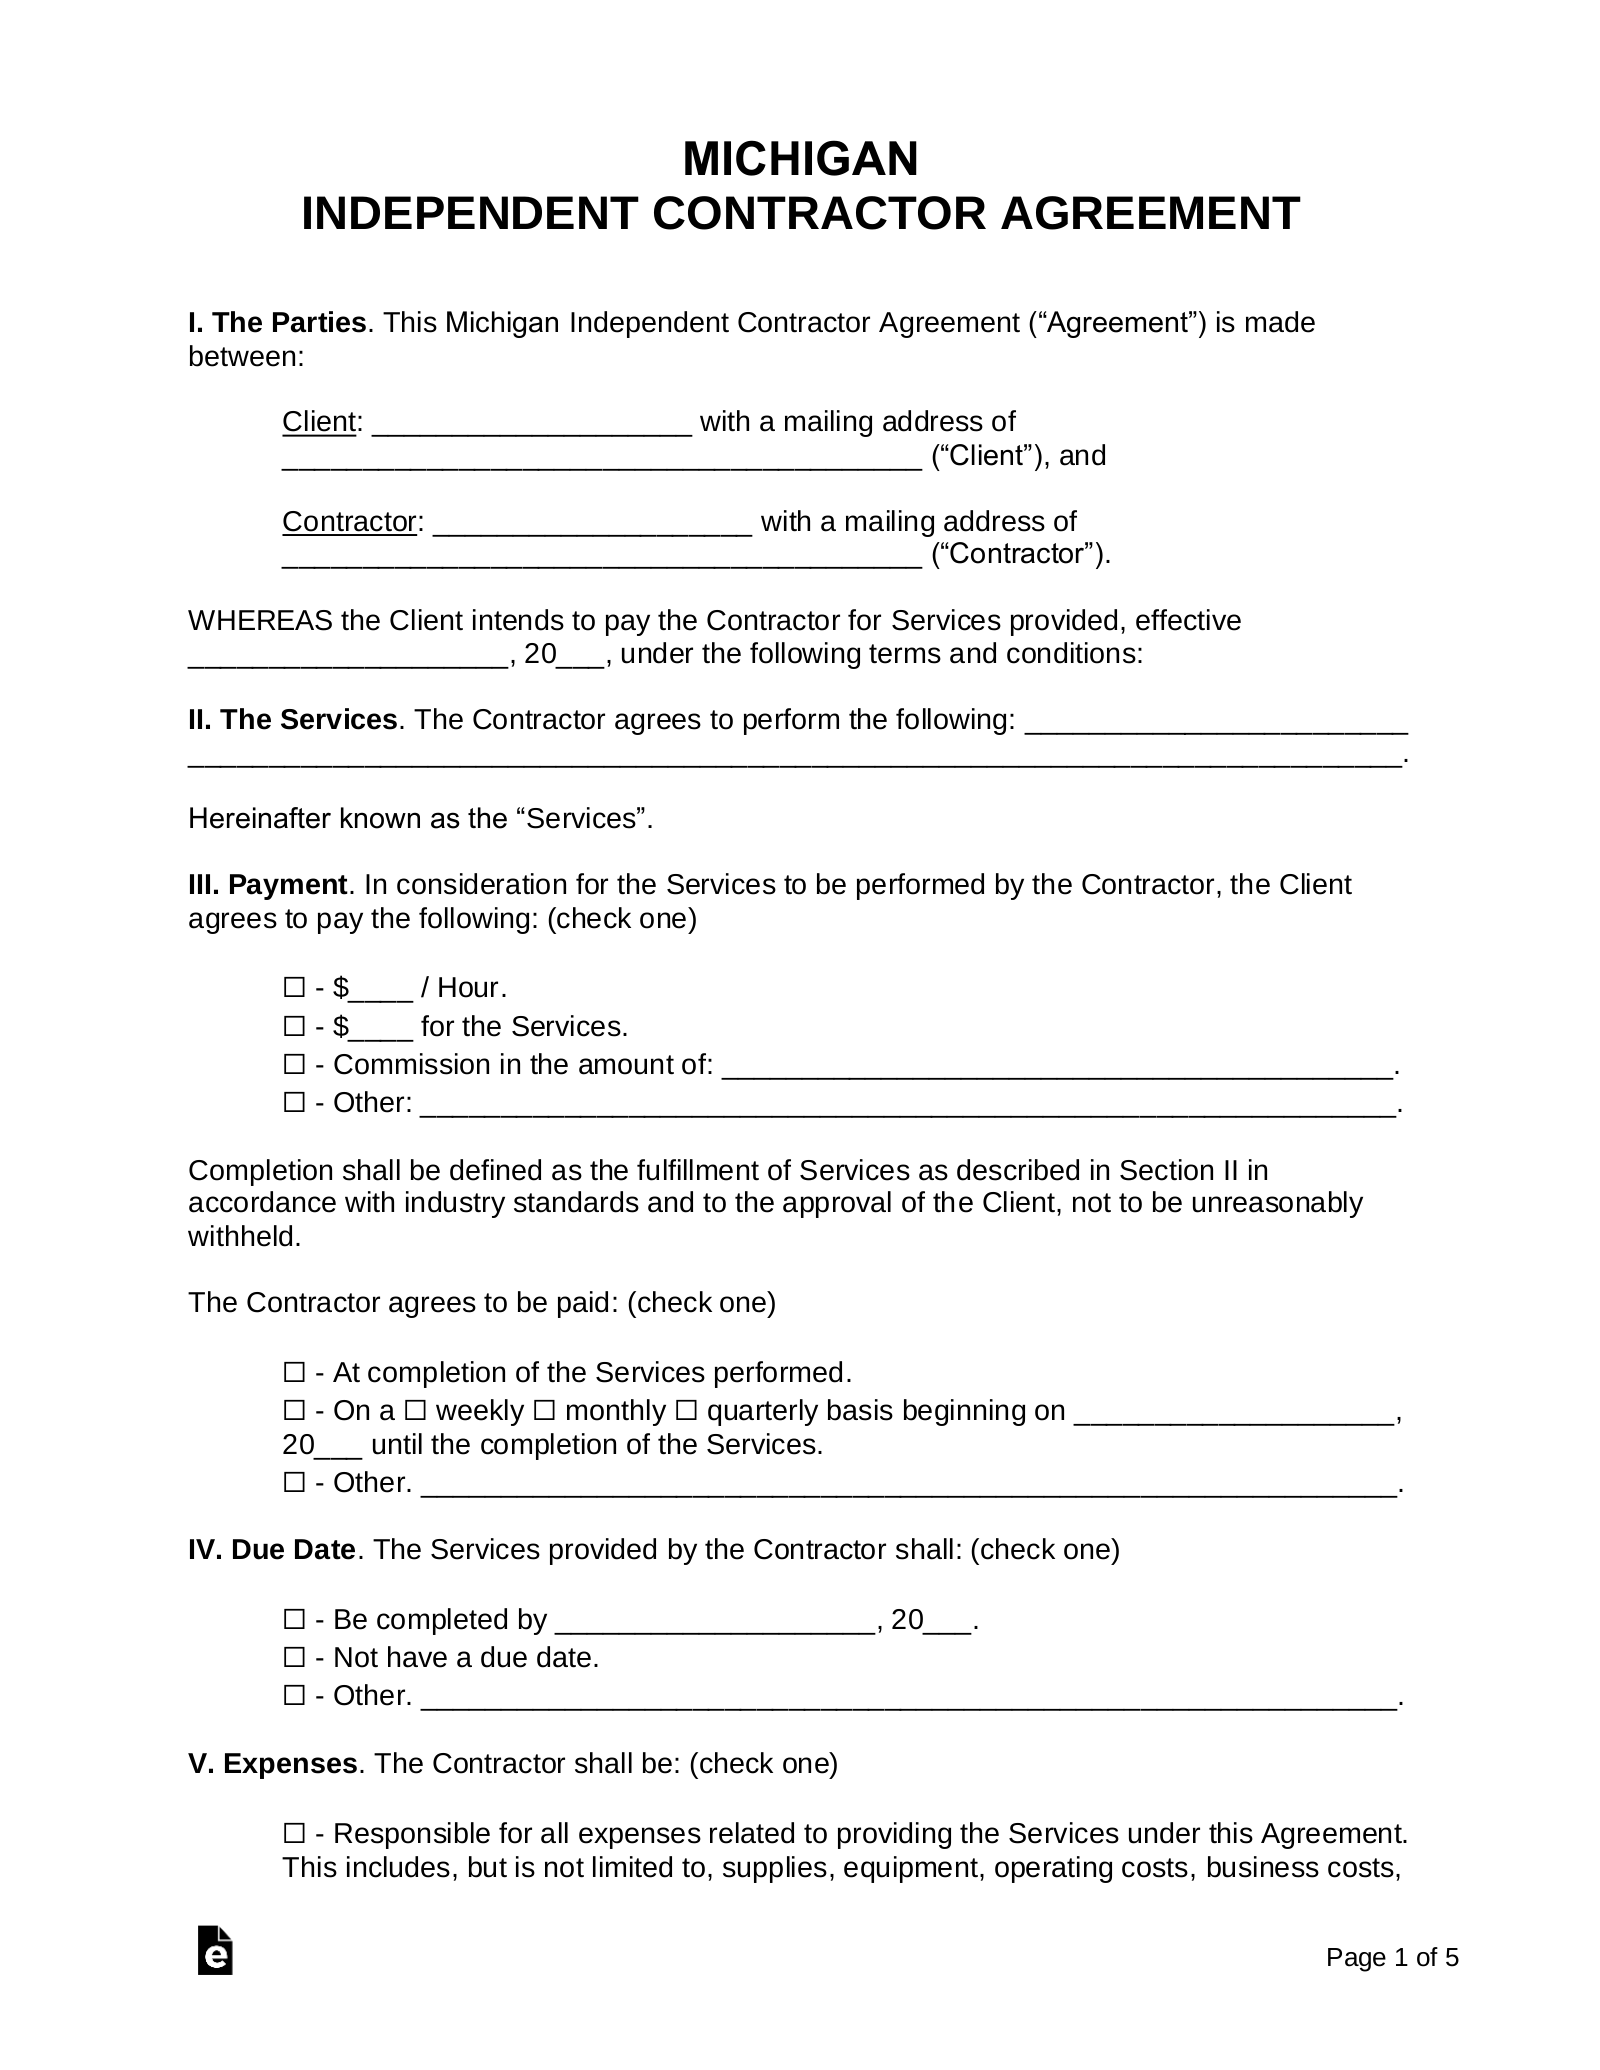 Free Michigan Independent Contractor Agreement - Word | PDF ...